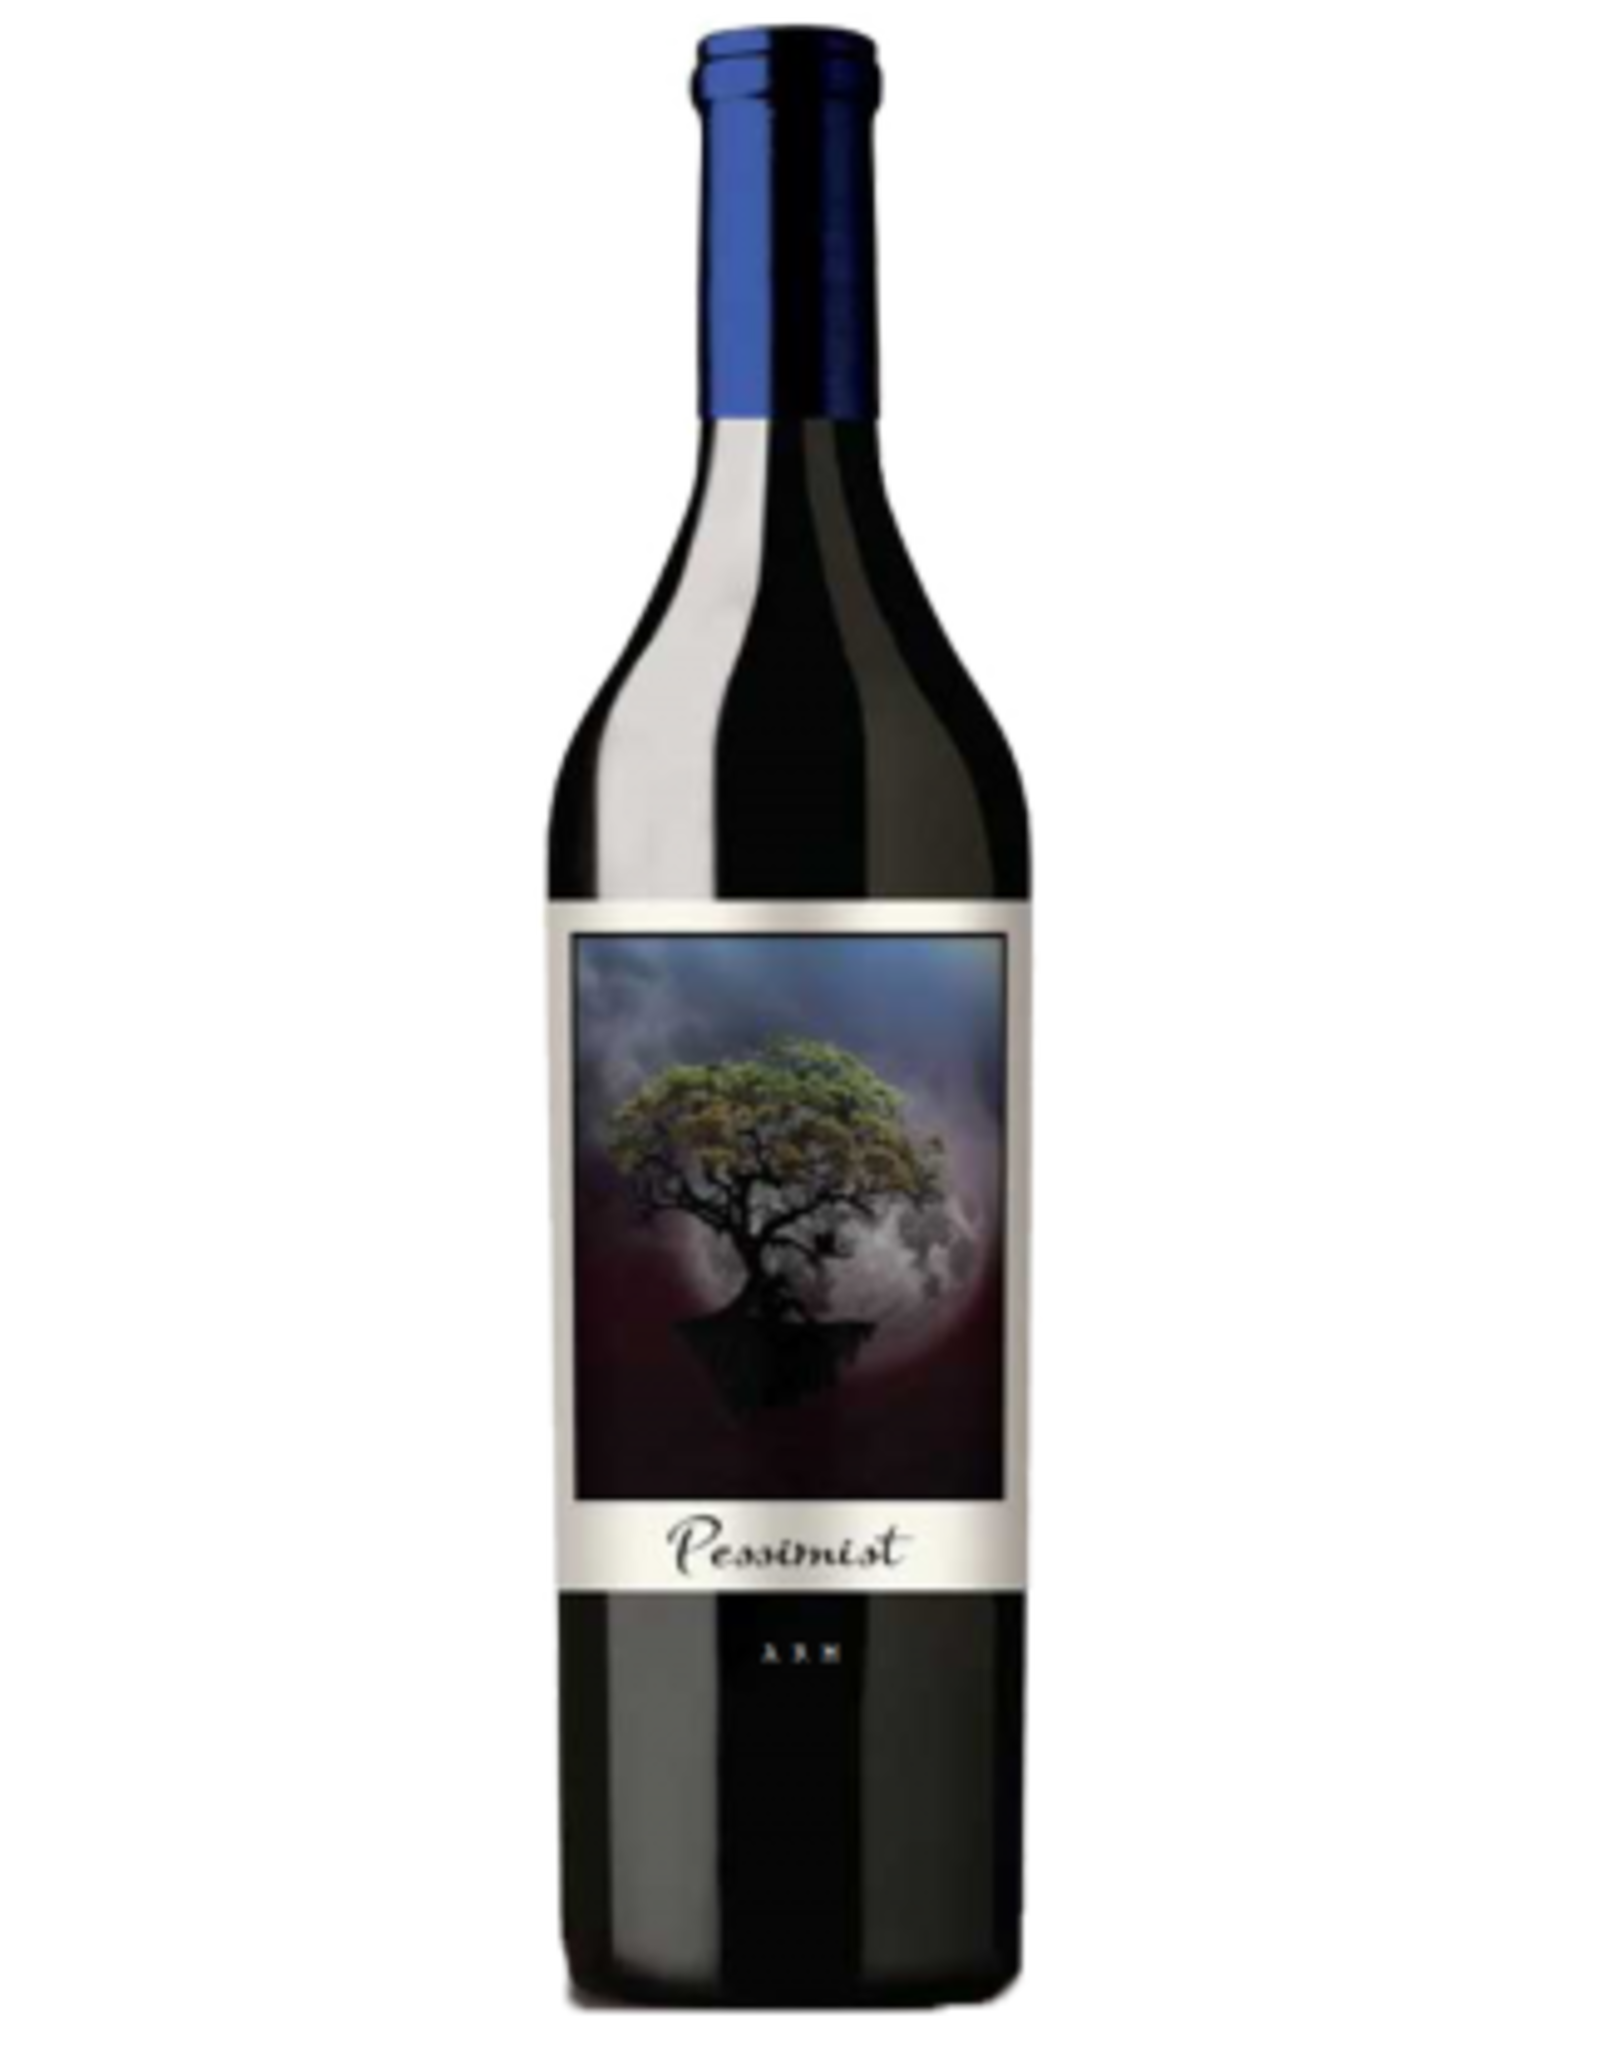 DAOU Pessimist Red Blend